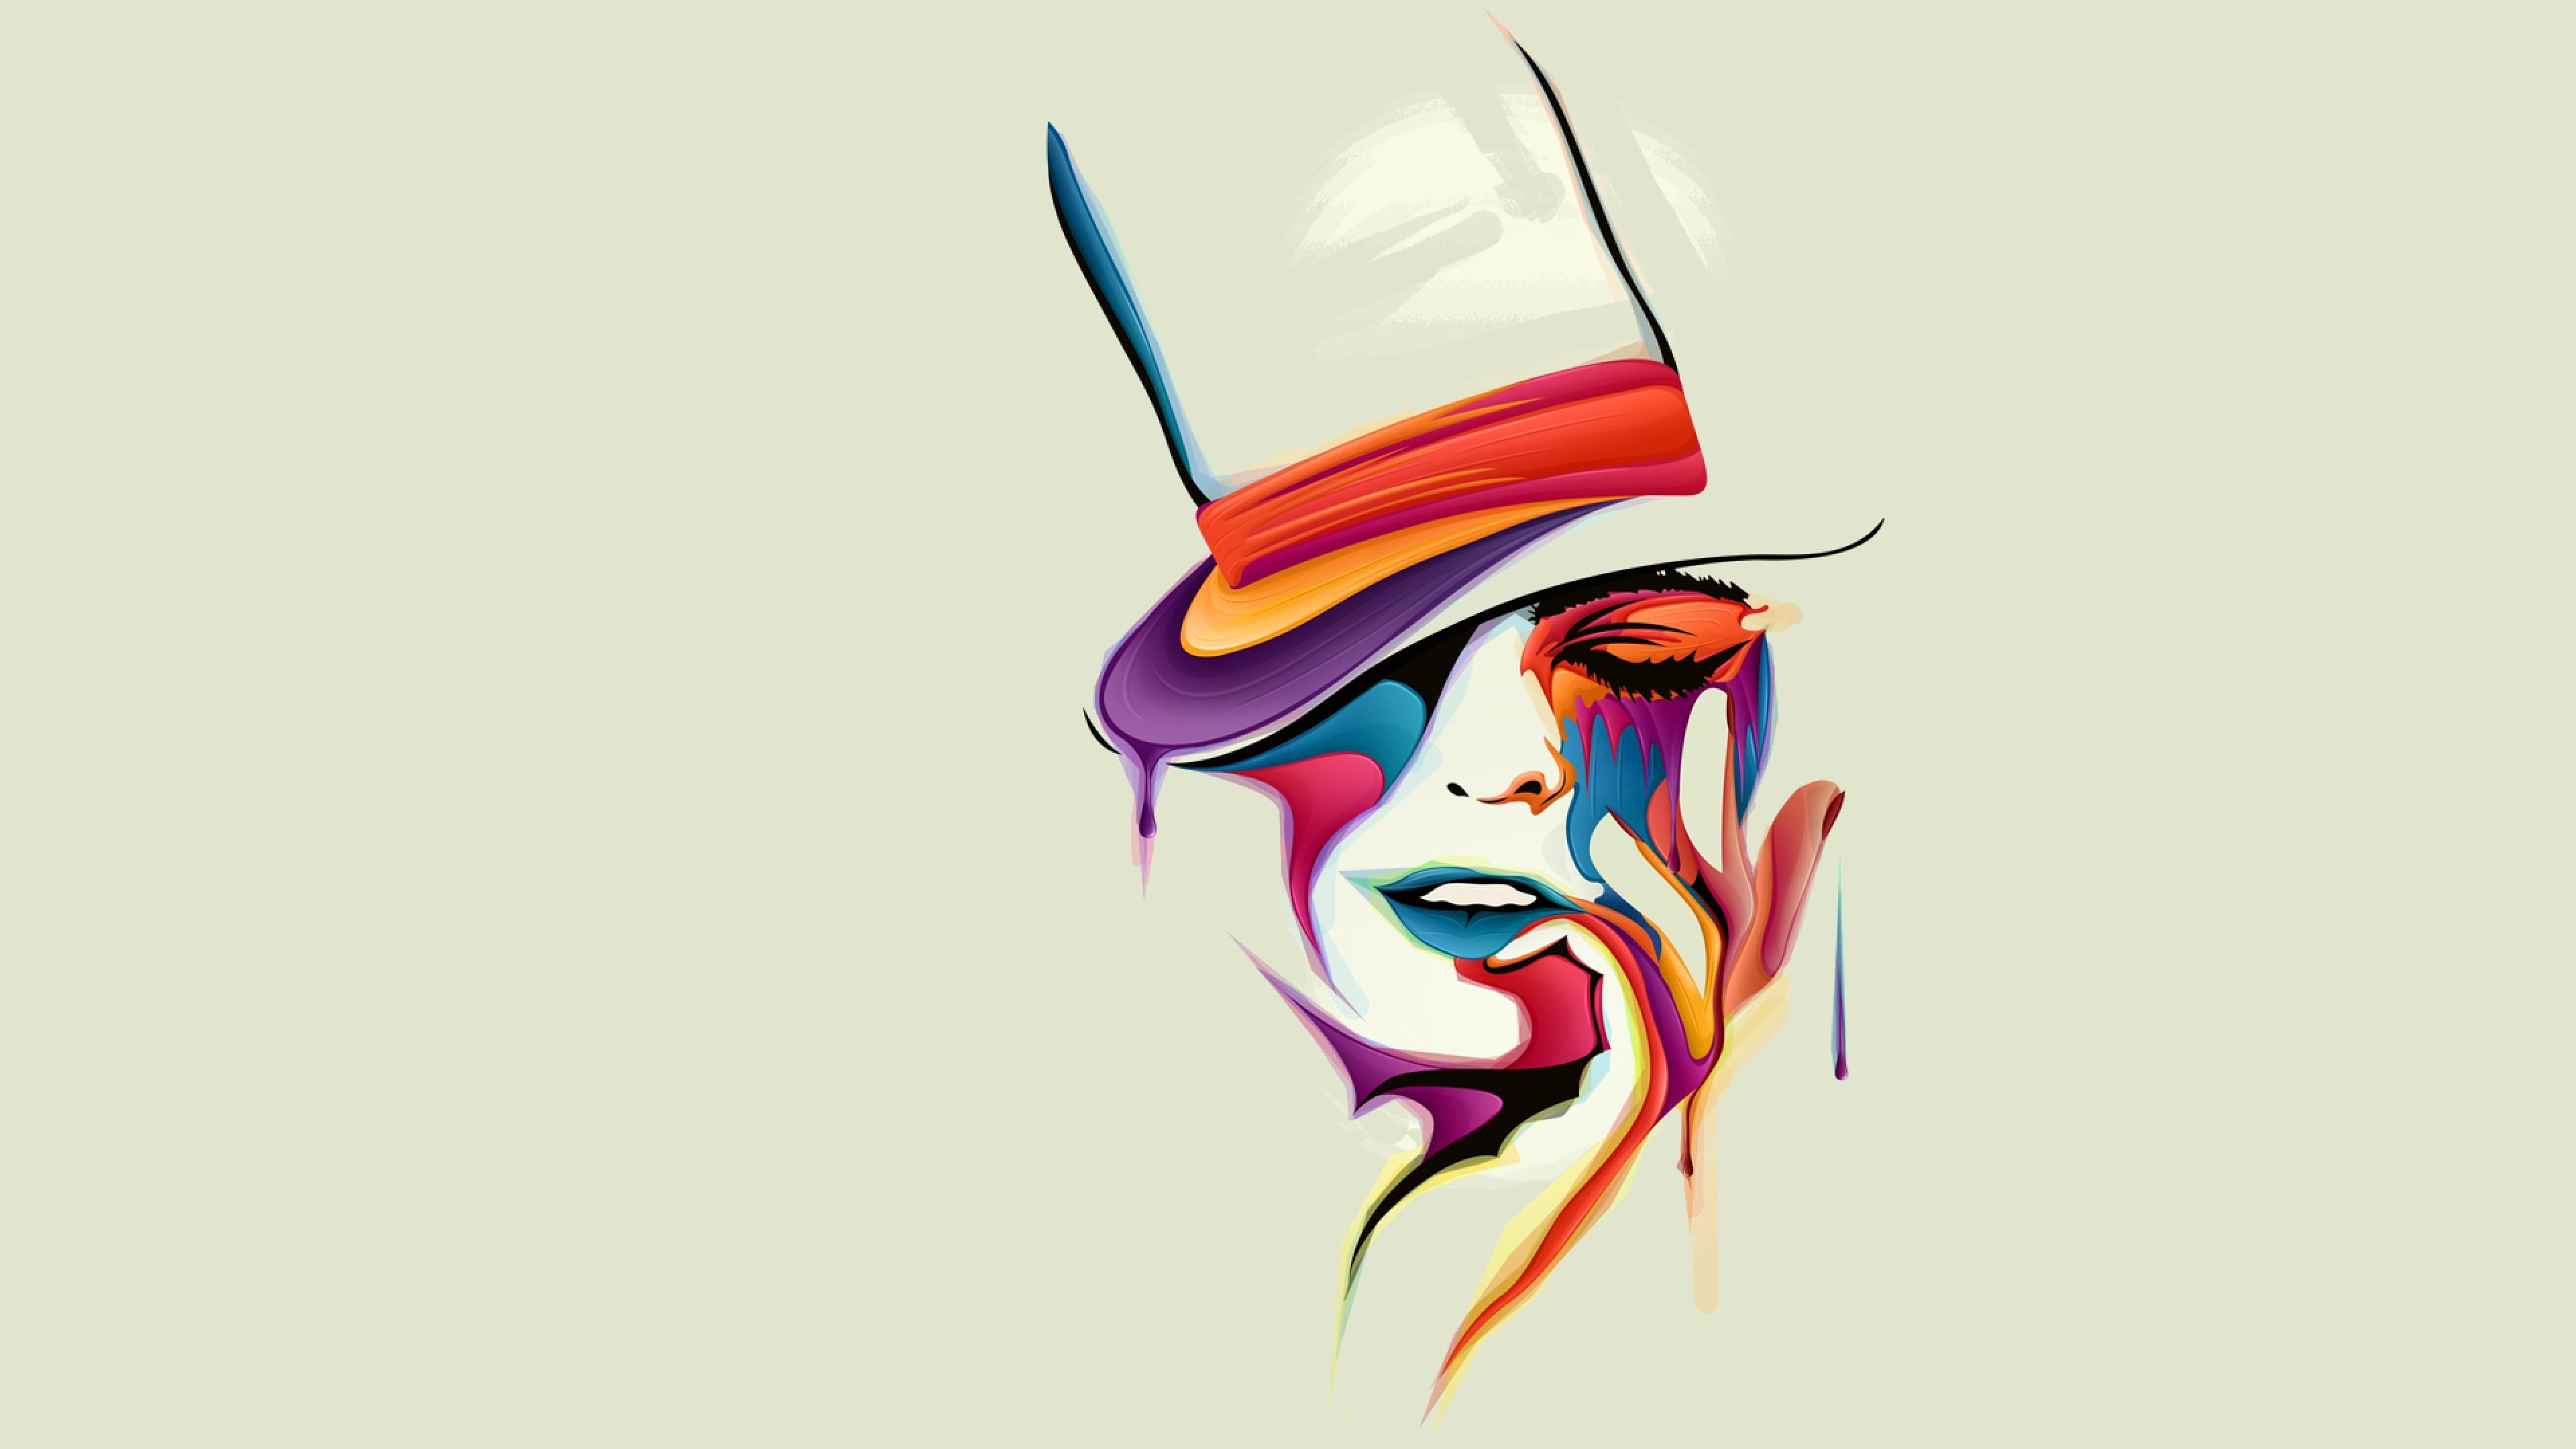 3840x2160 1600x900 Face Vector Art 1600x900 Resolution Hd 4k Wallpapers